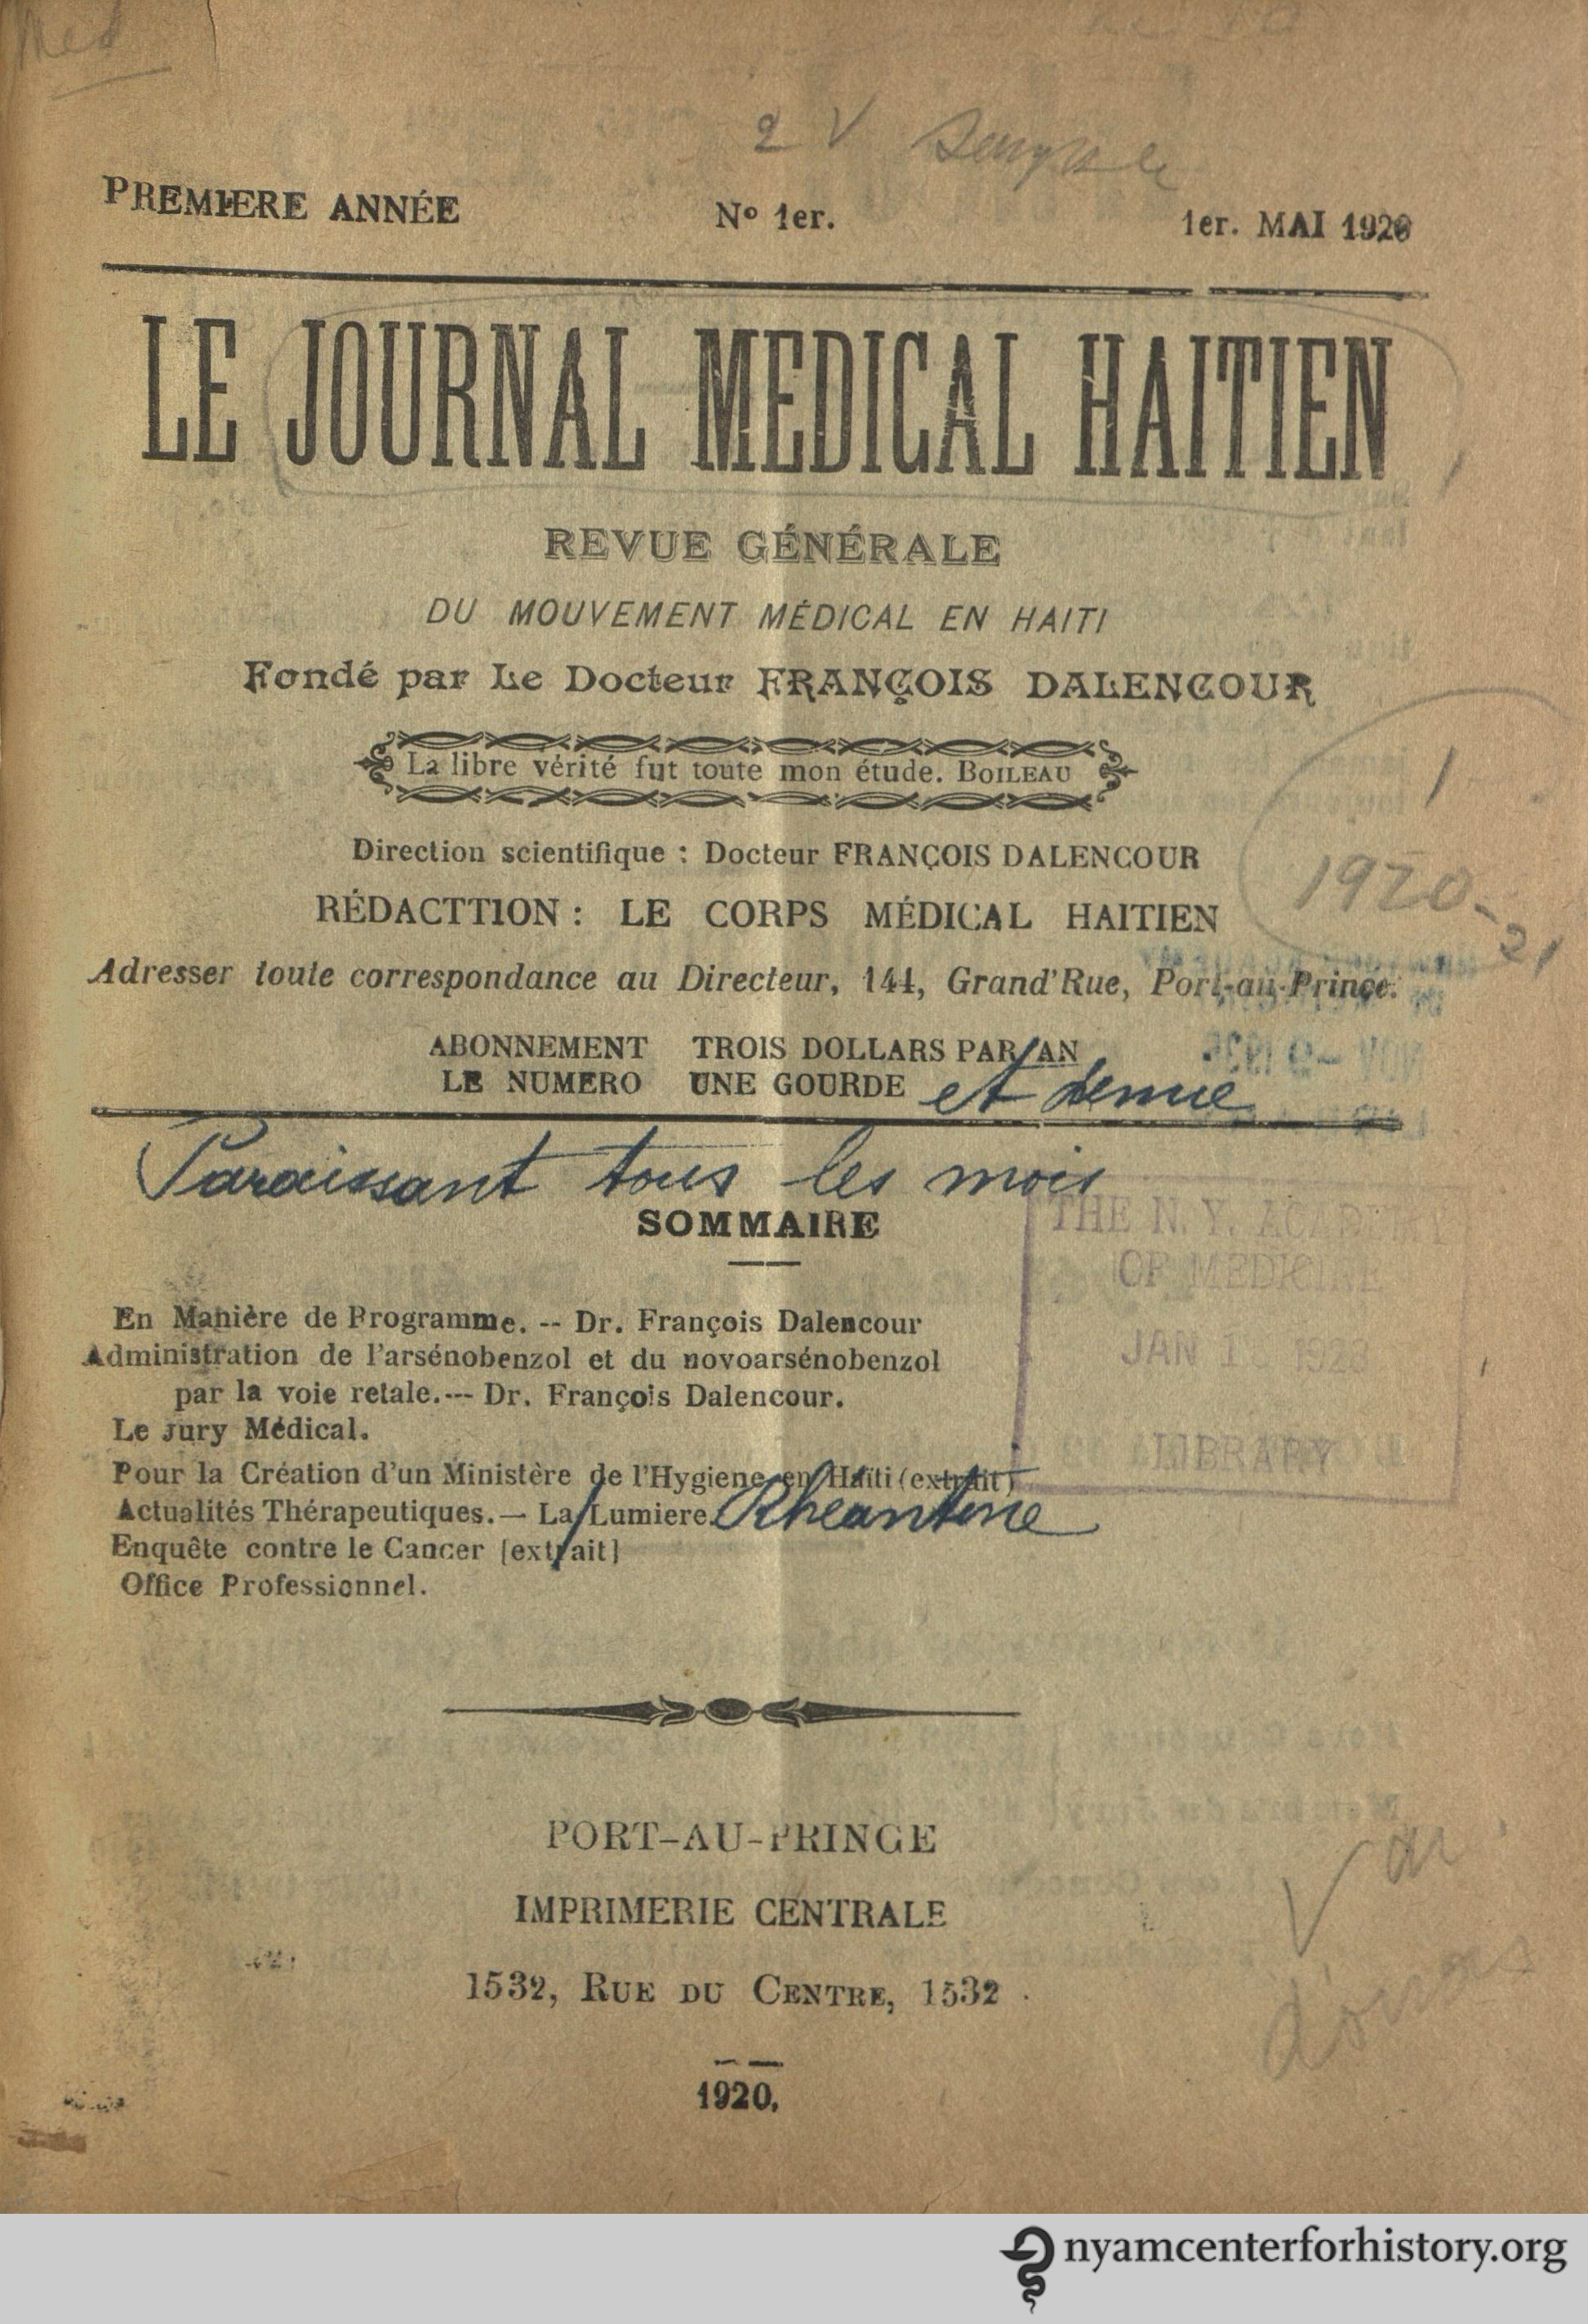 LeJournalMedicalHaitien_May1920_1_watermark